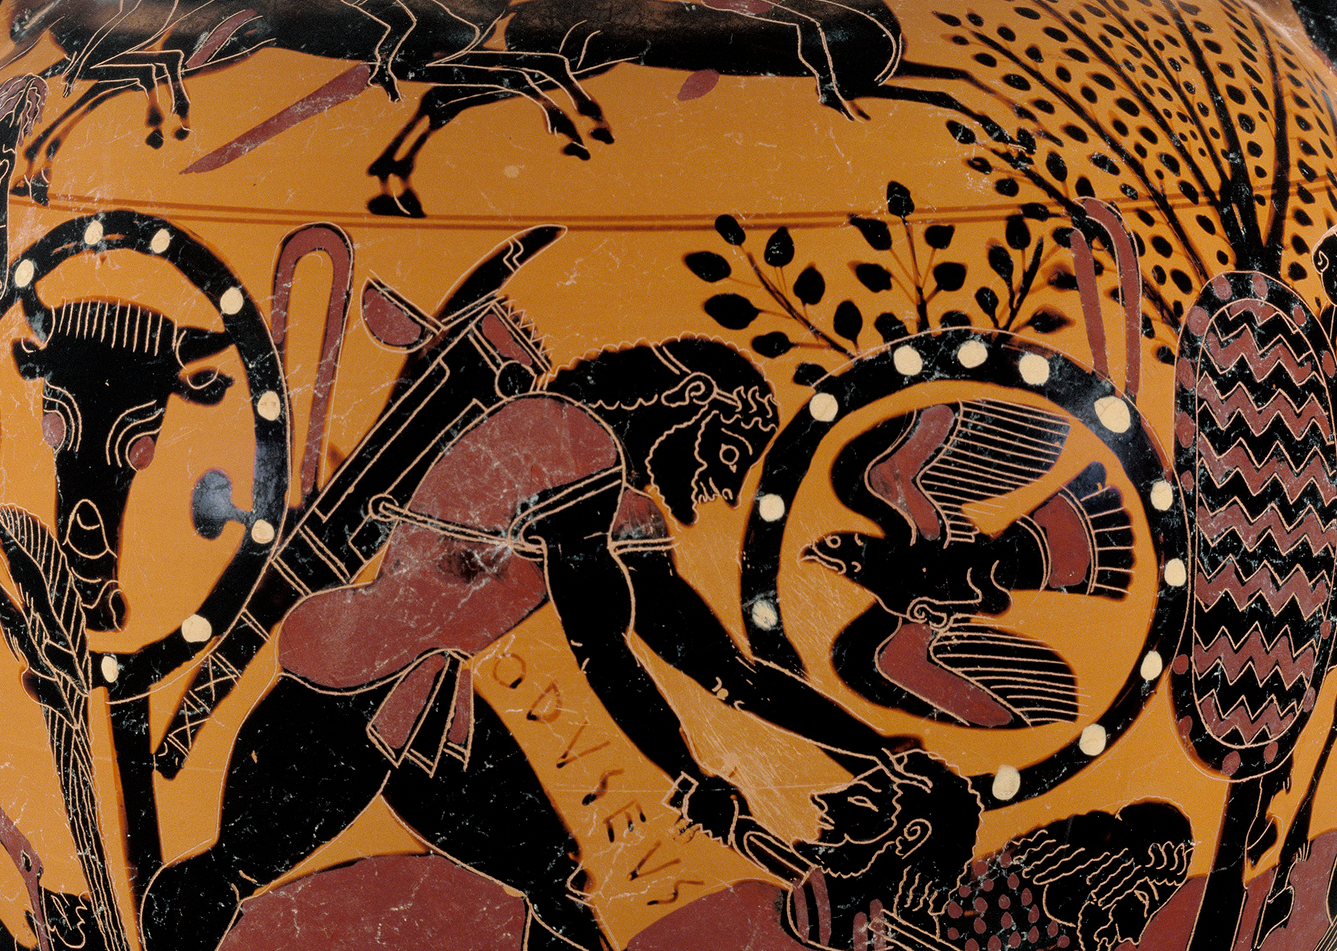 odysseuss heroic attributes Achilles is a hero in the epic sense, replete with flaws and bad qualities that shape his character, but with passions and convictions that a reader relates to the odyssey, a journey of determination, patience, and.